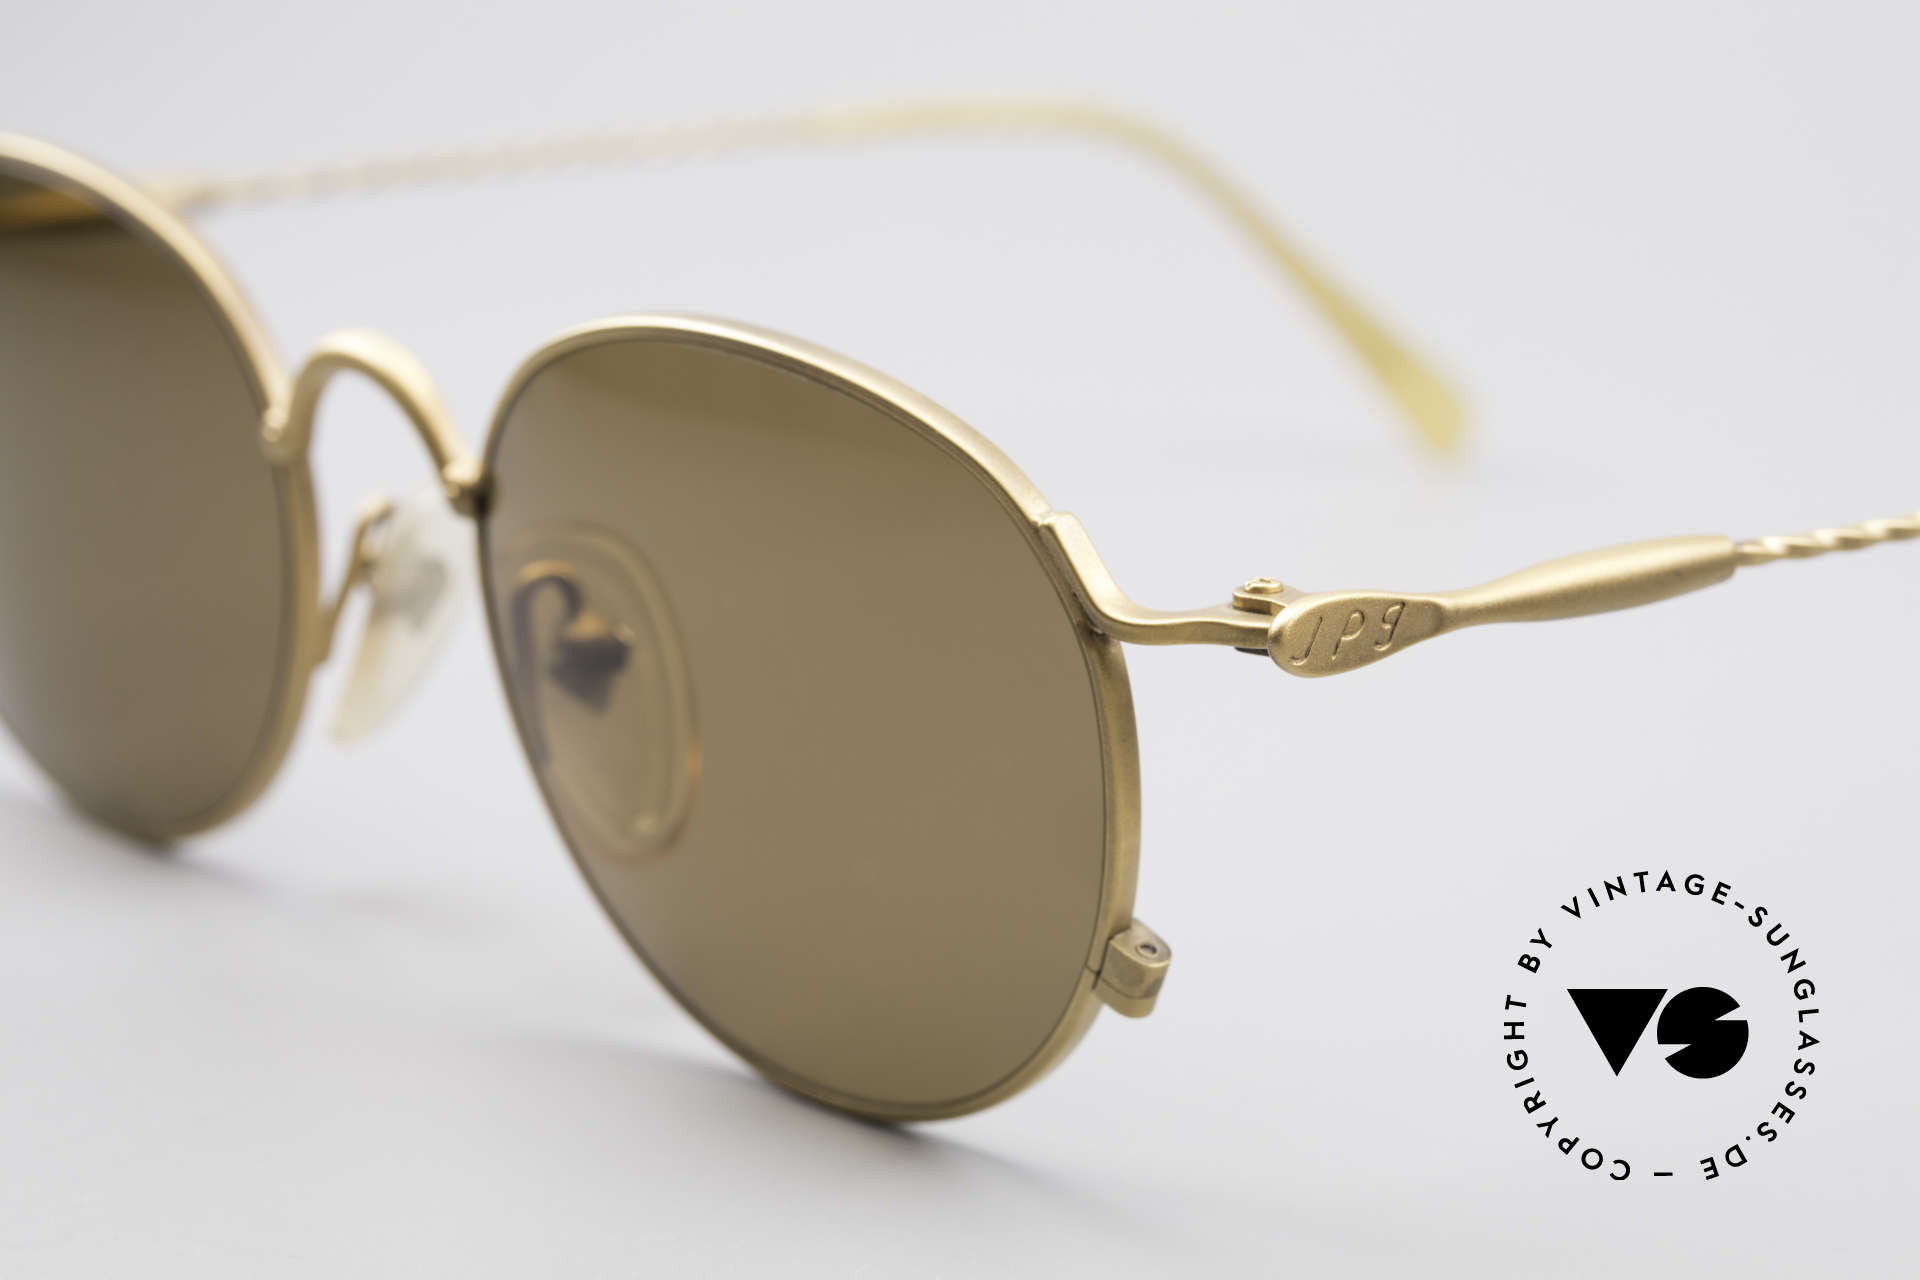 Jean Paul Gaultier 55-2172 Vintage Round JPG Sunglasses, brown CR39 sun lenses for 100% UV protection, Made for Men and Women